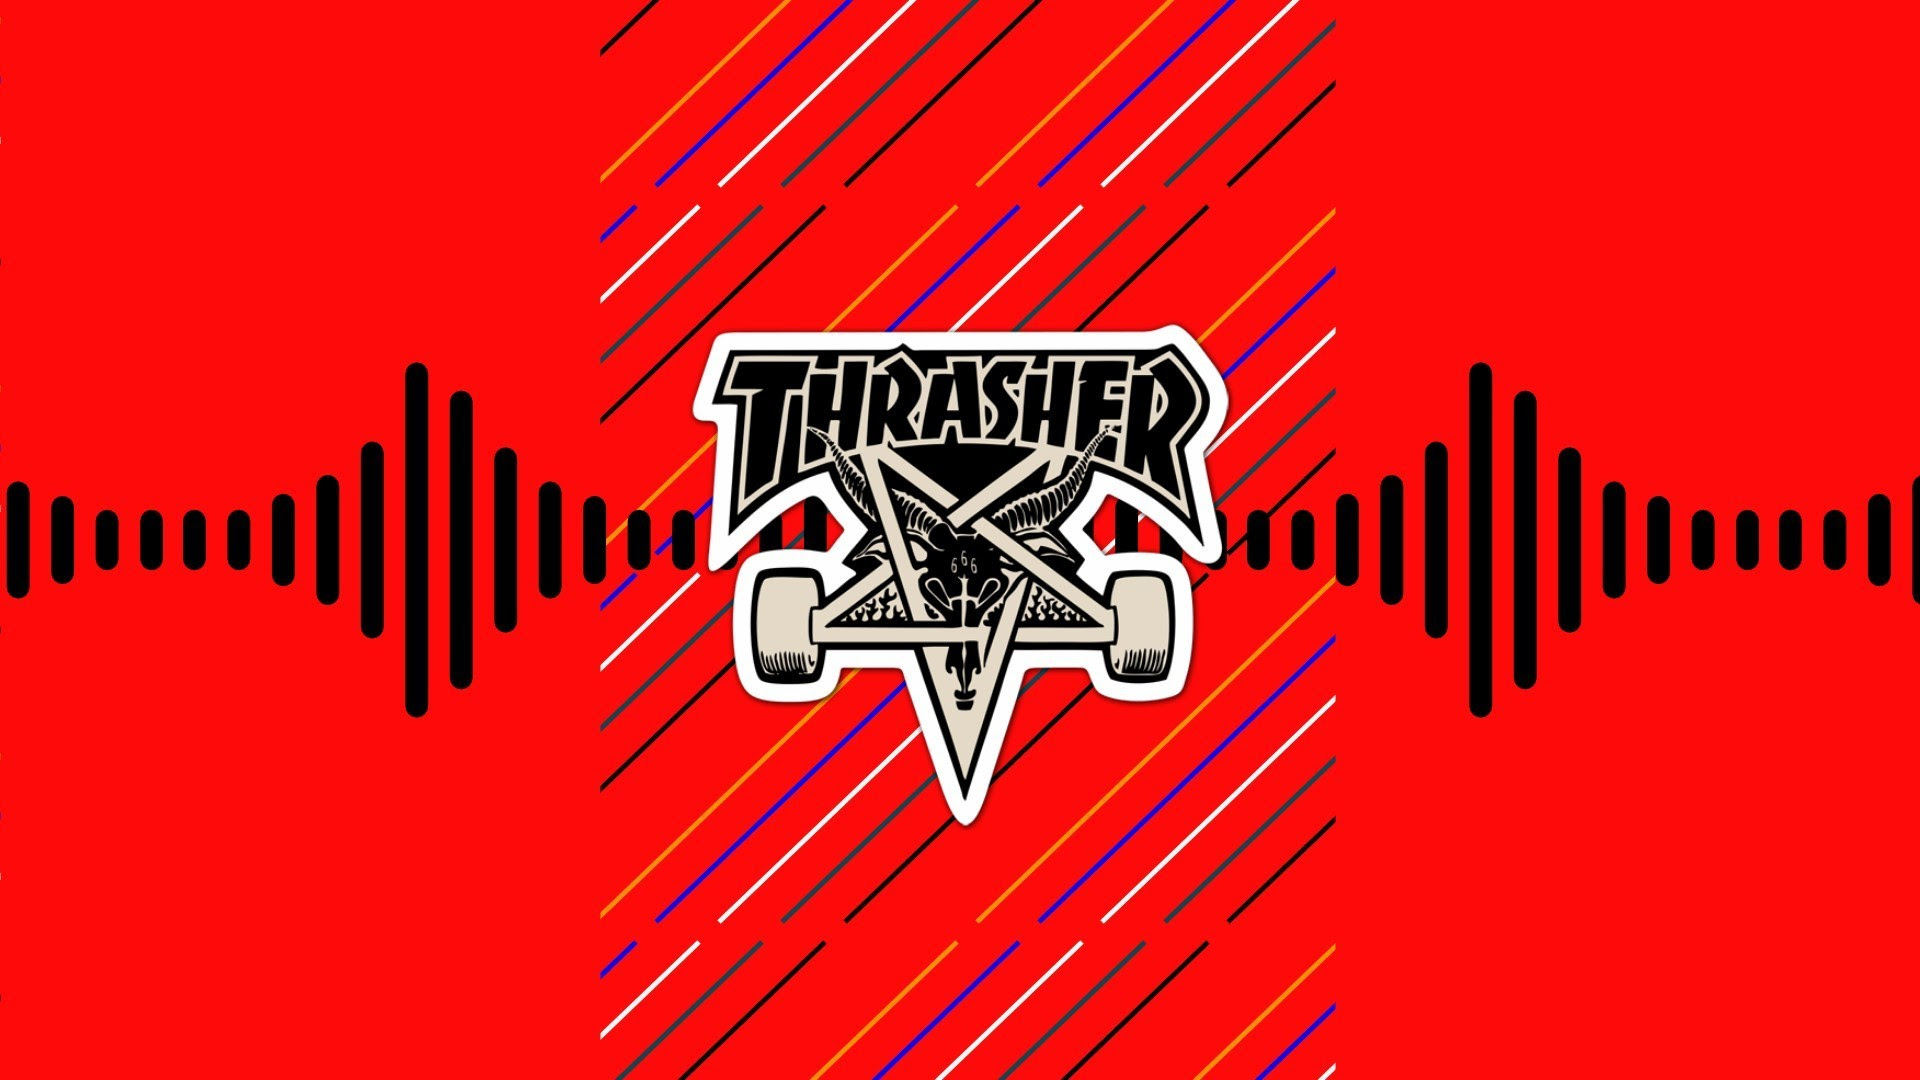 Thrasher Wallpaper iPhone (74+ images)